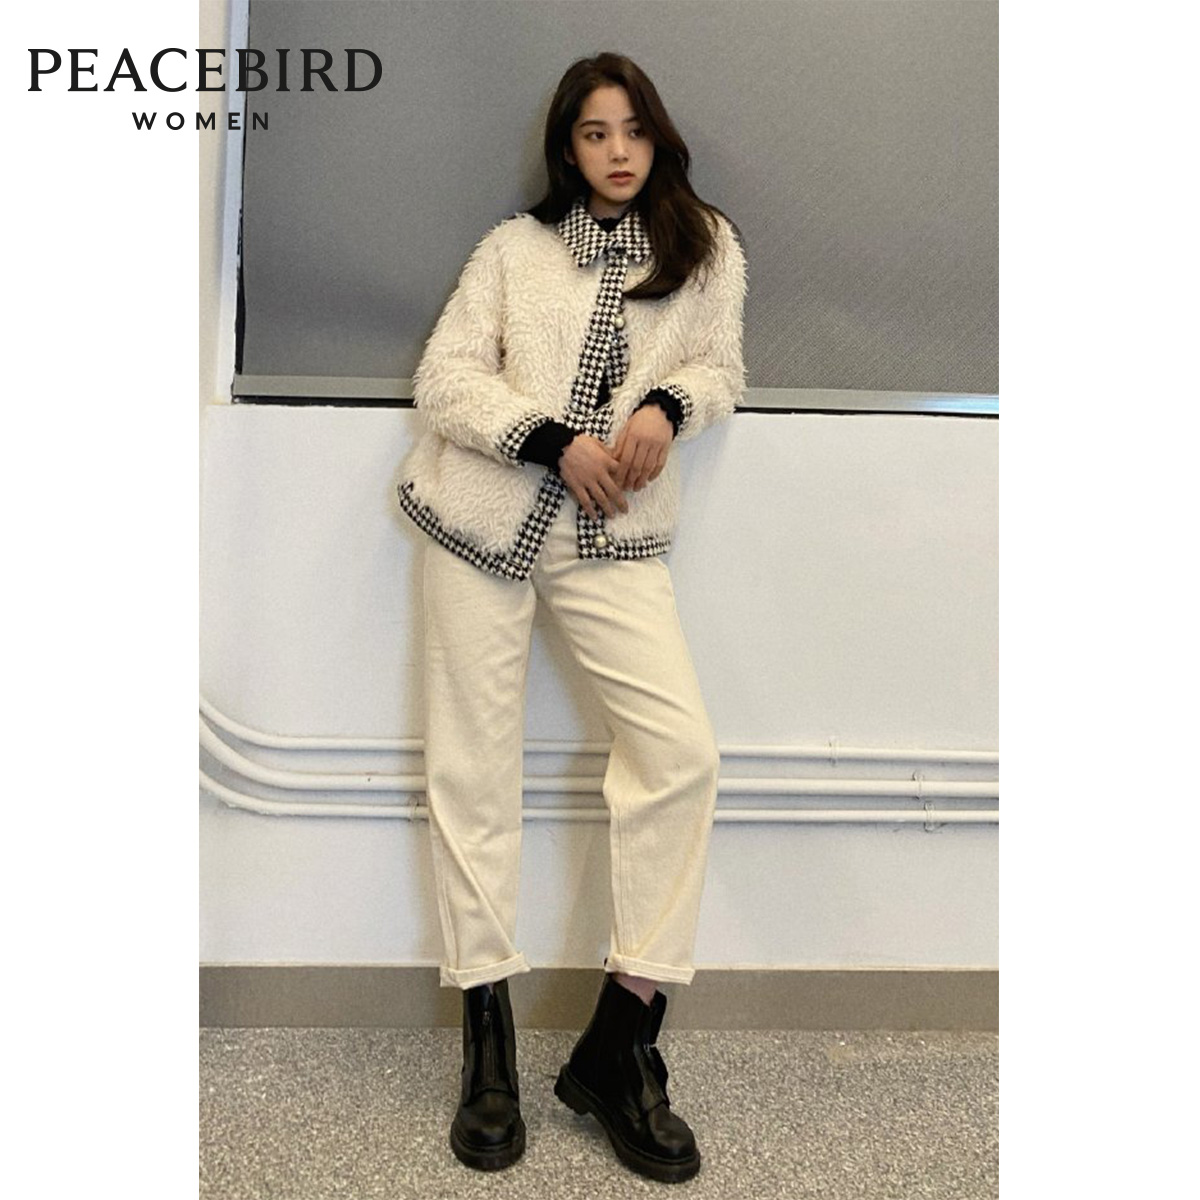 The same style Peacebird 2020 winter new fashion ladies houndstooth stitching fur coat women